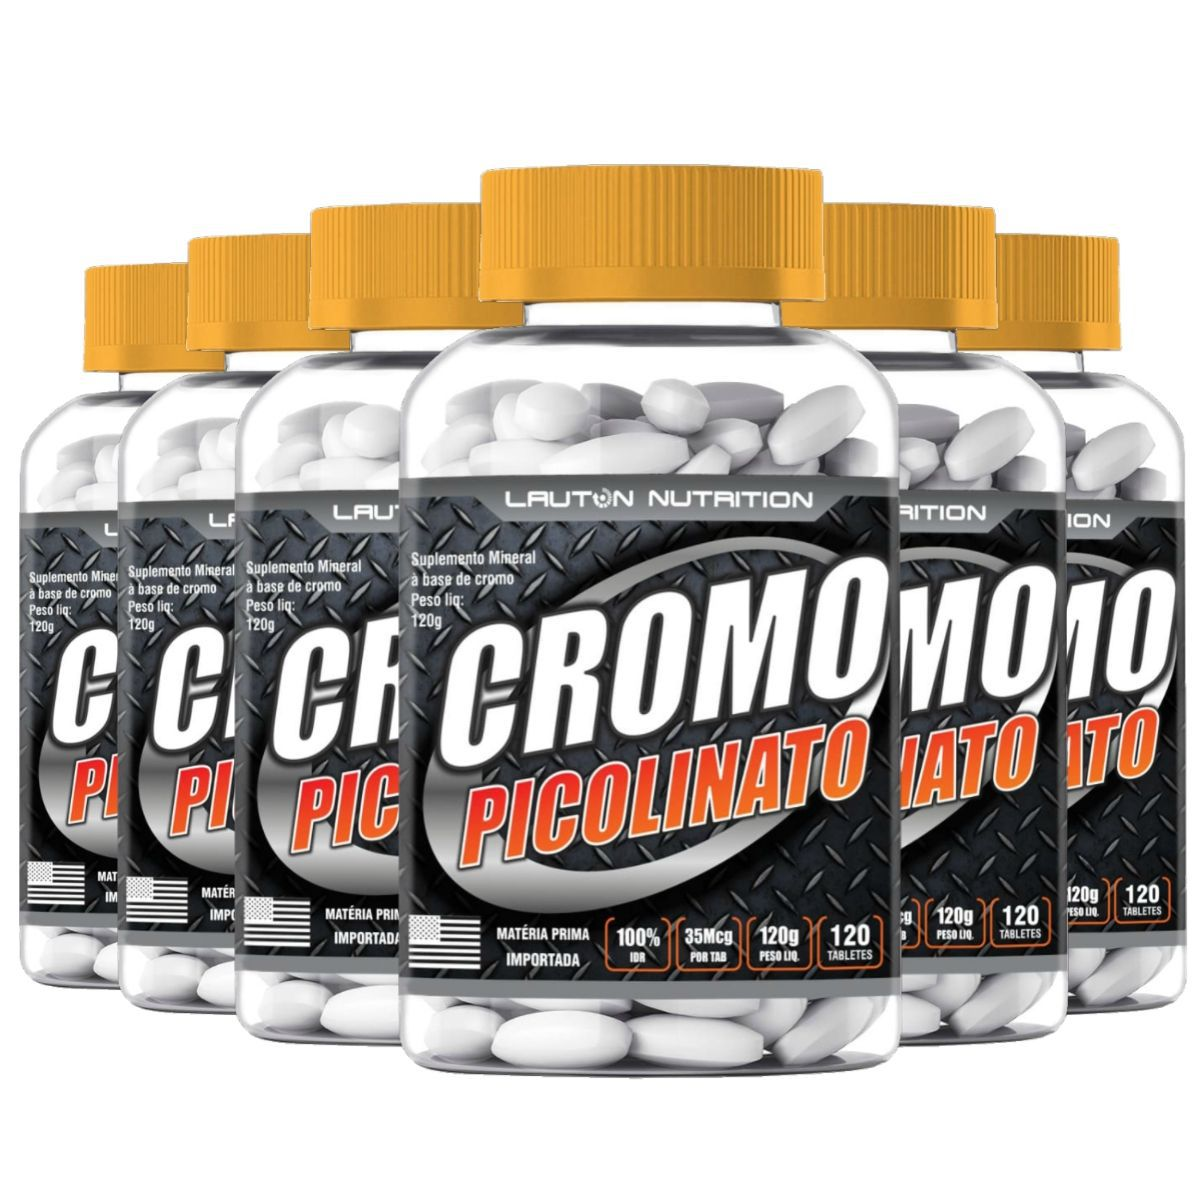 Kit 6 Picolinato de Cromo Lauton Nutrition - 120 Comp 1000mg